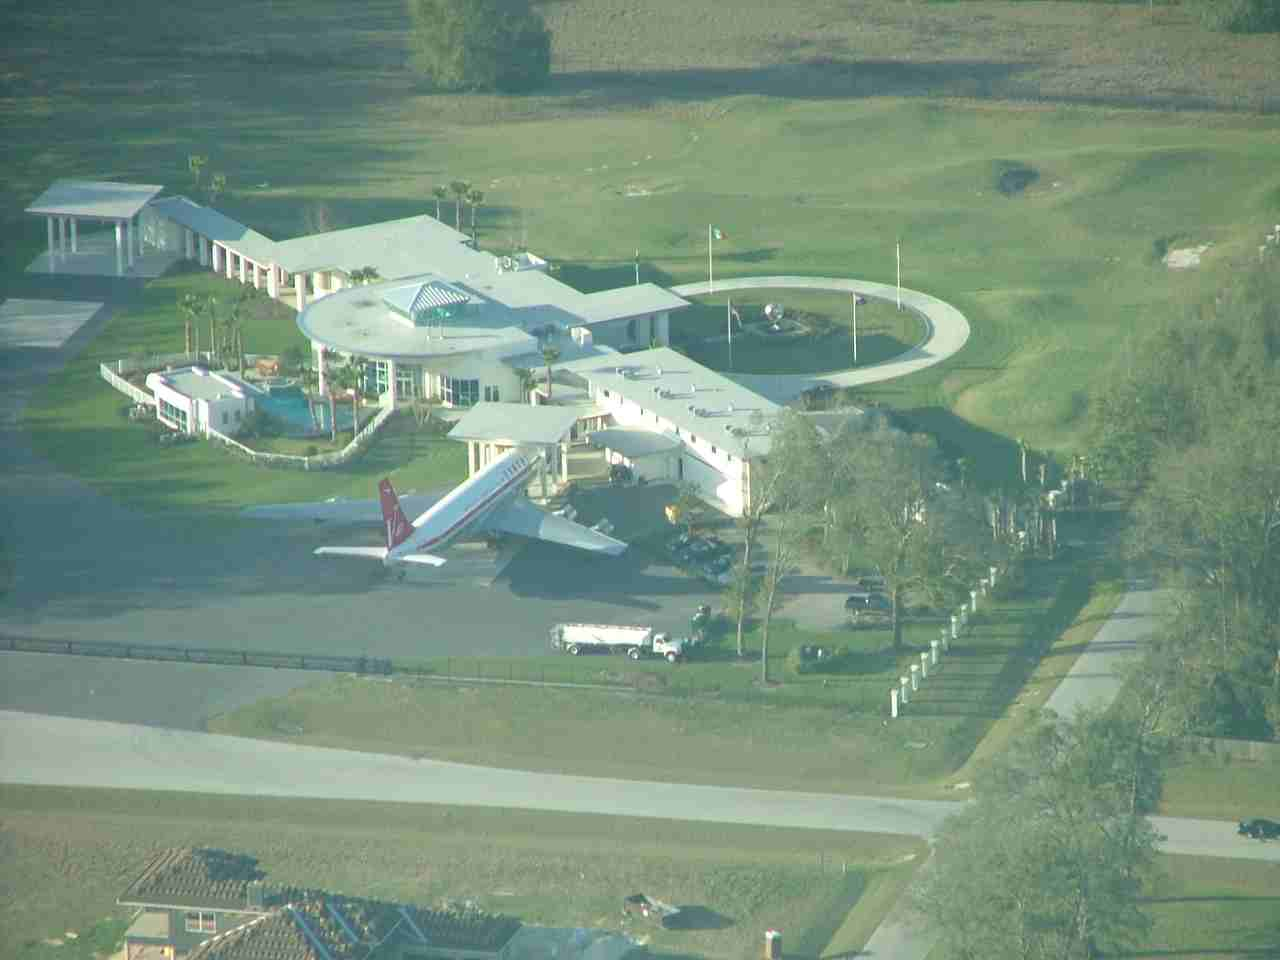 Picture of John Travolta's House & B707